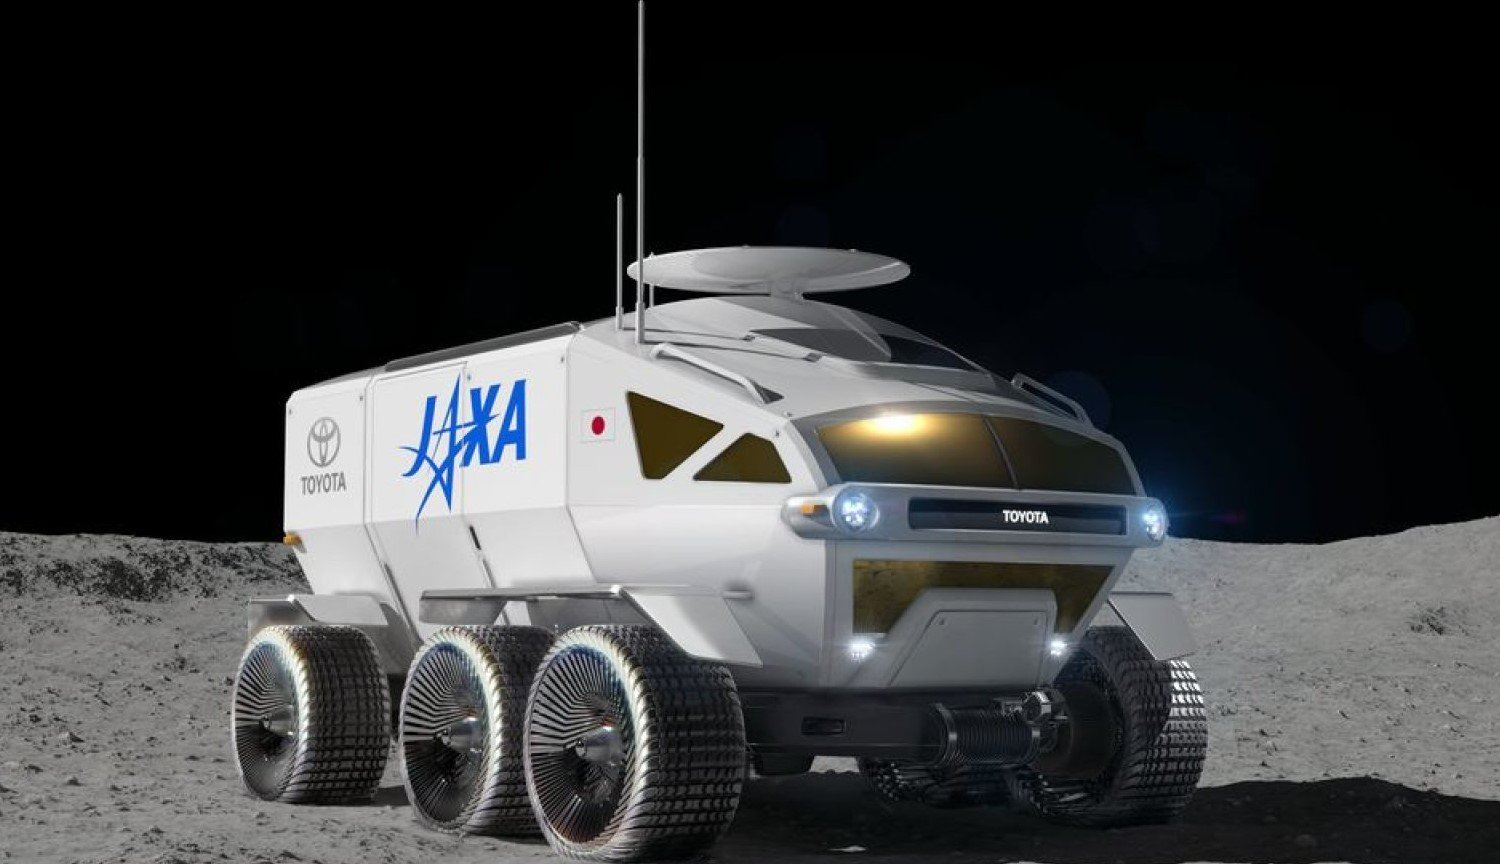 Toyota in space: the Japanese manufacturer is developing a lunar Rover